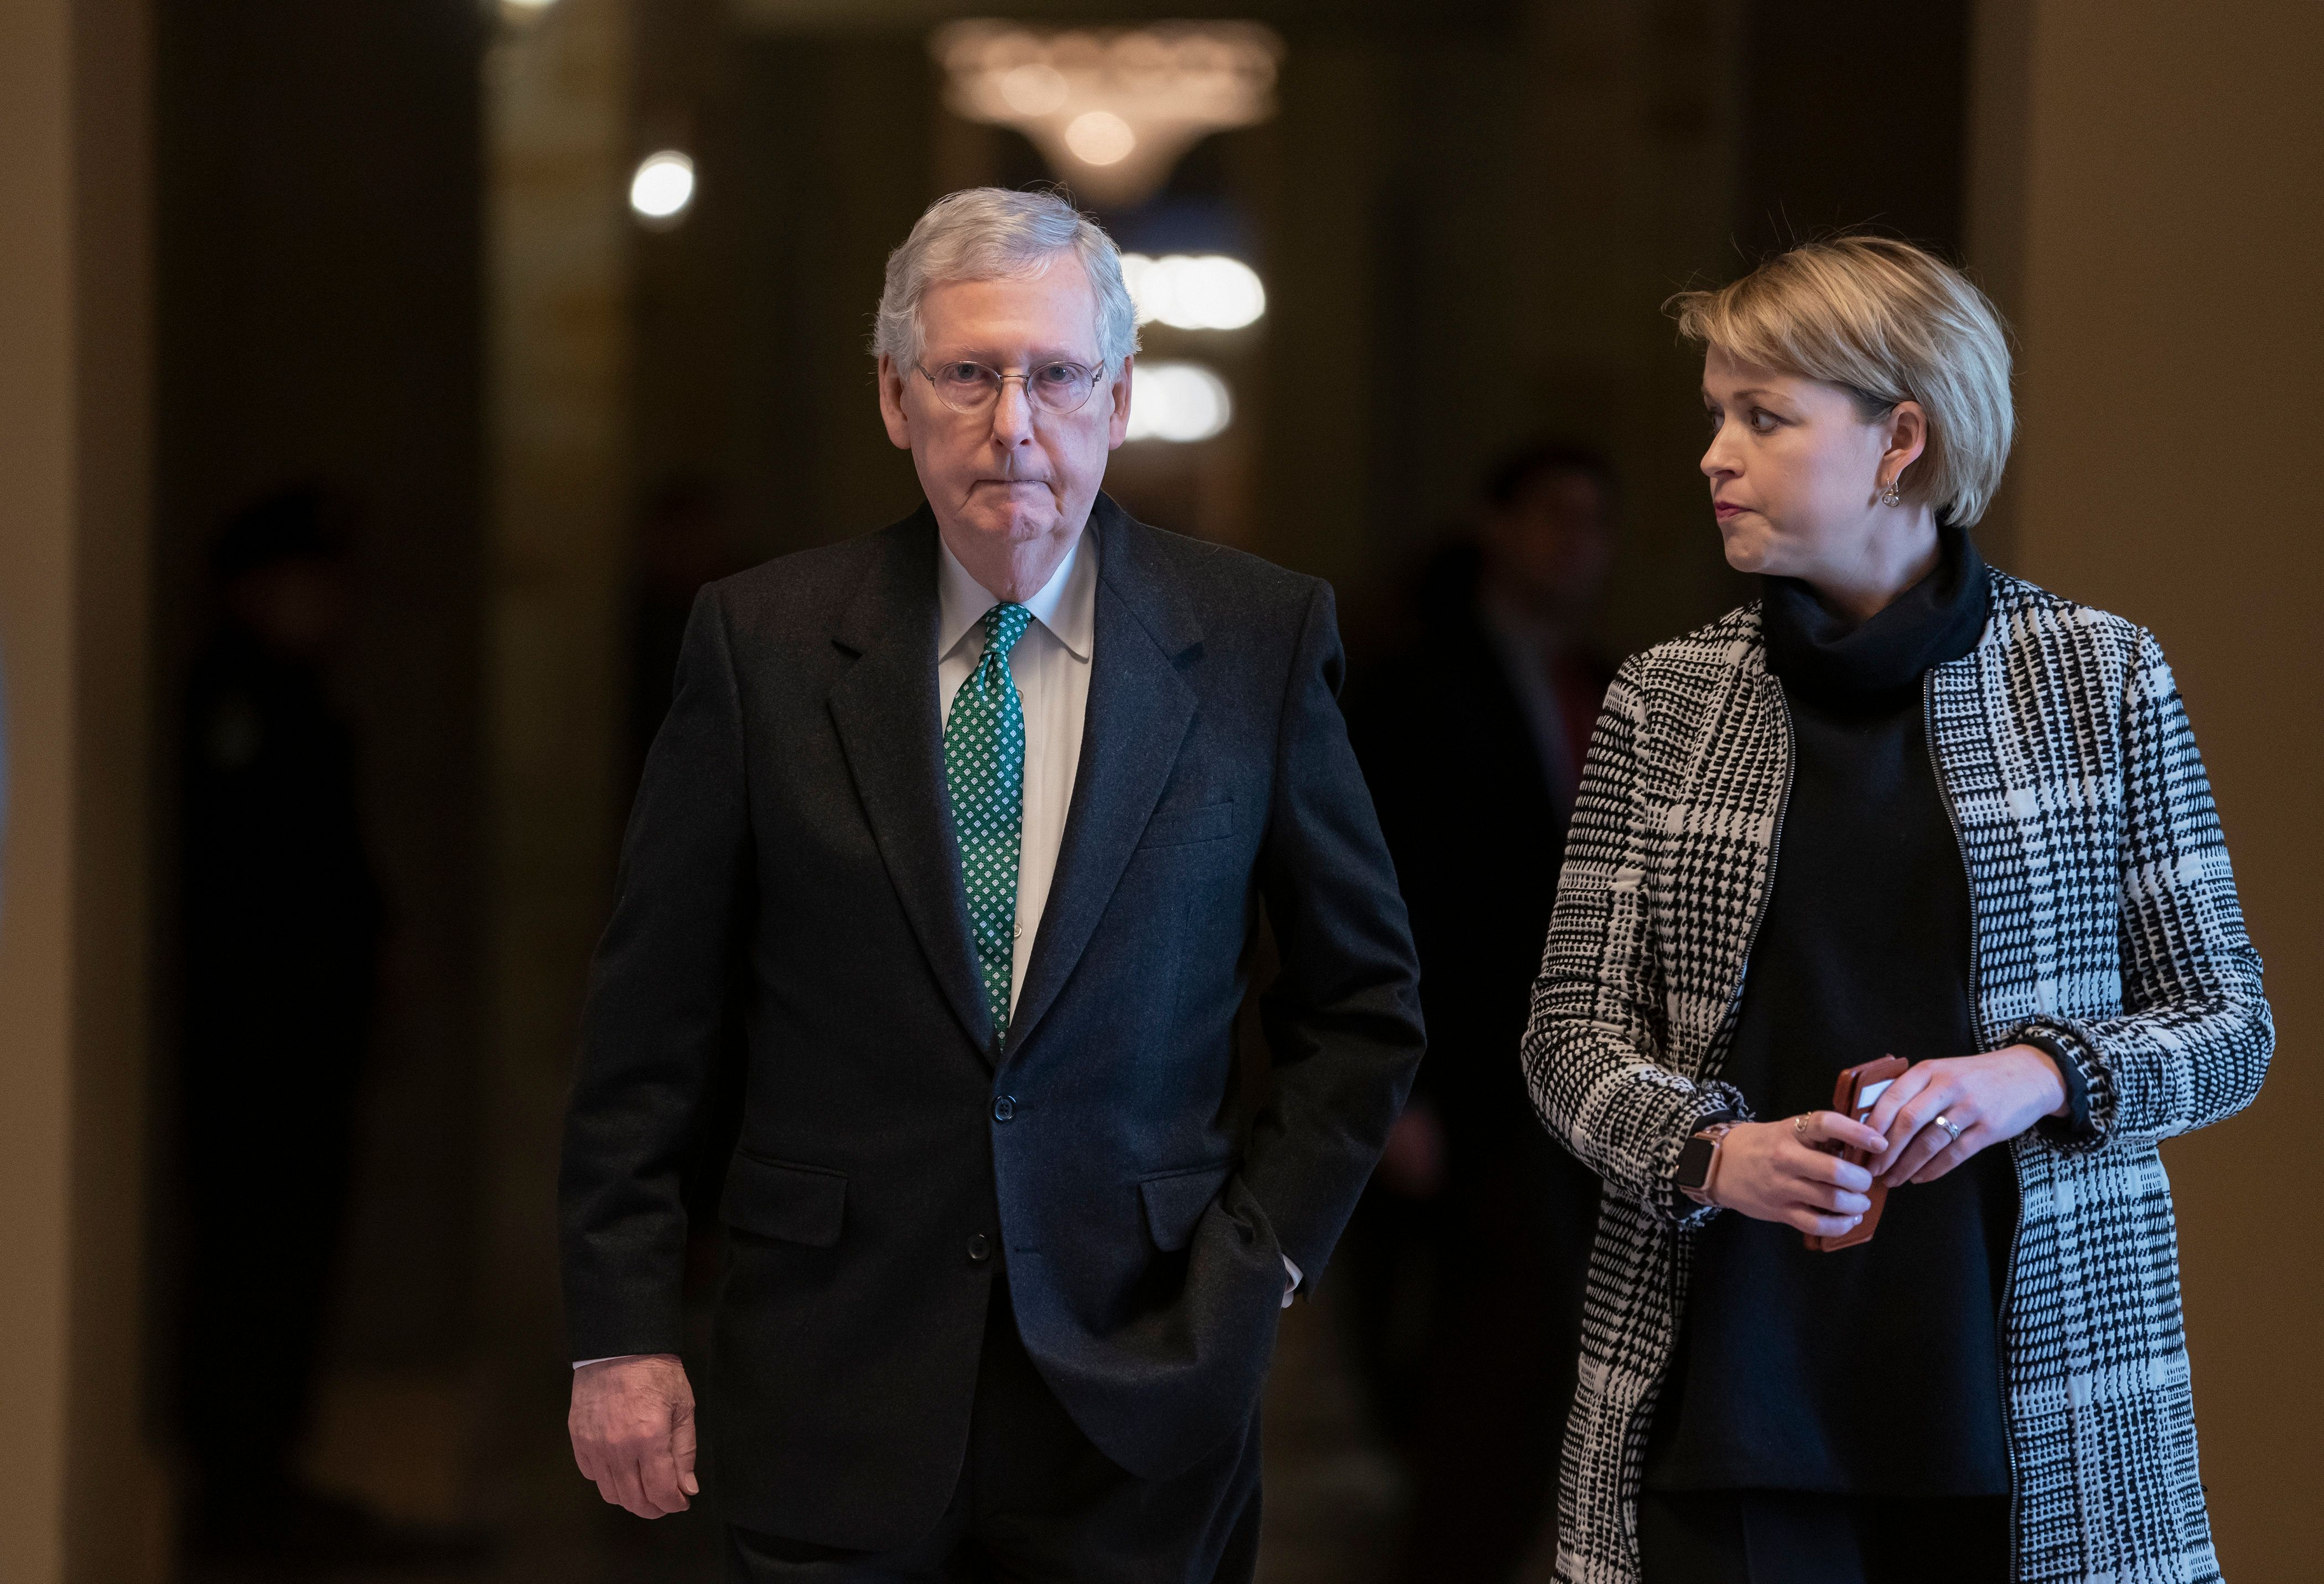 Senate Majority Leader Mitch McConnell has already made it easier for Republicans to confirm Trump's Supreme Court nominees a